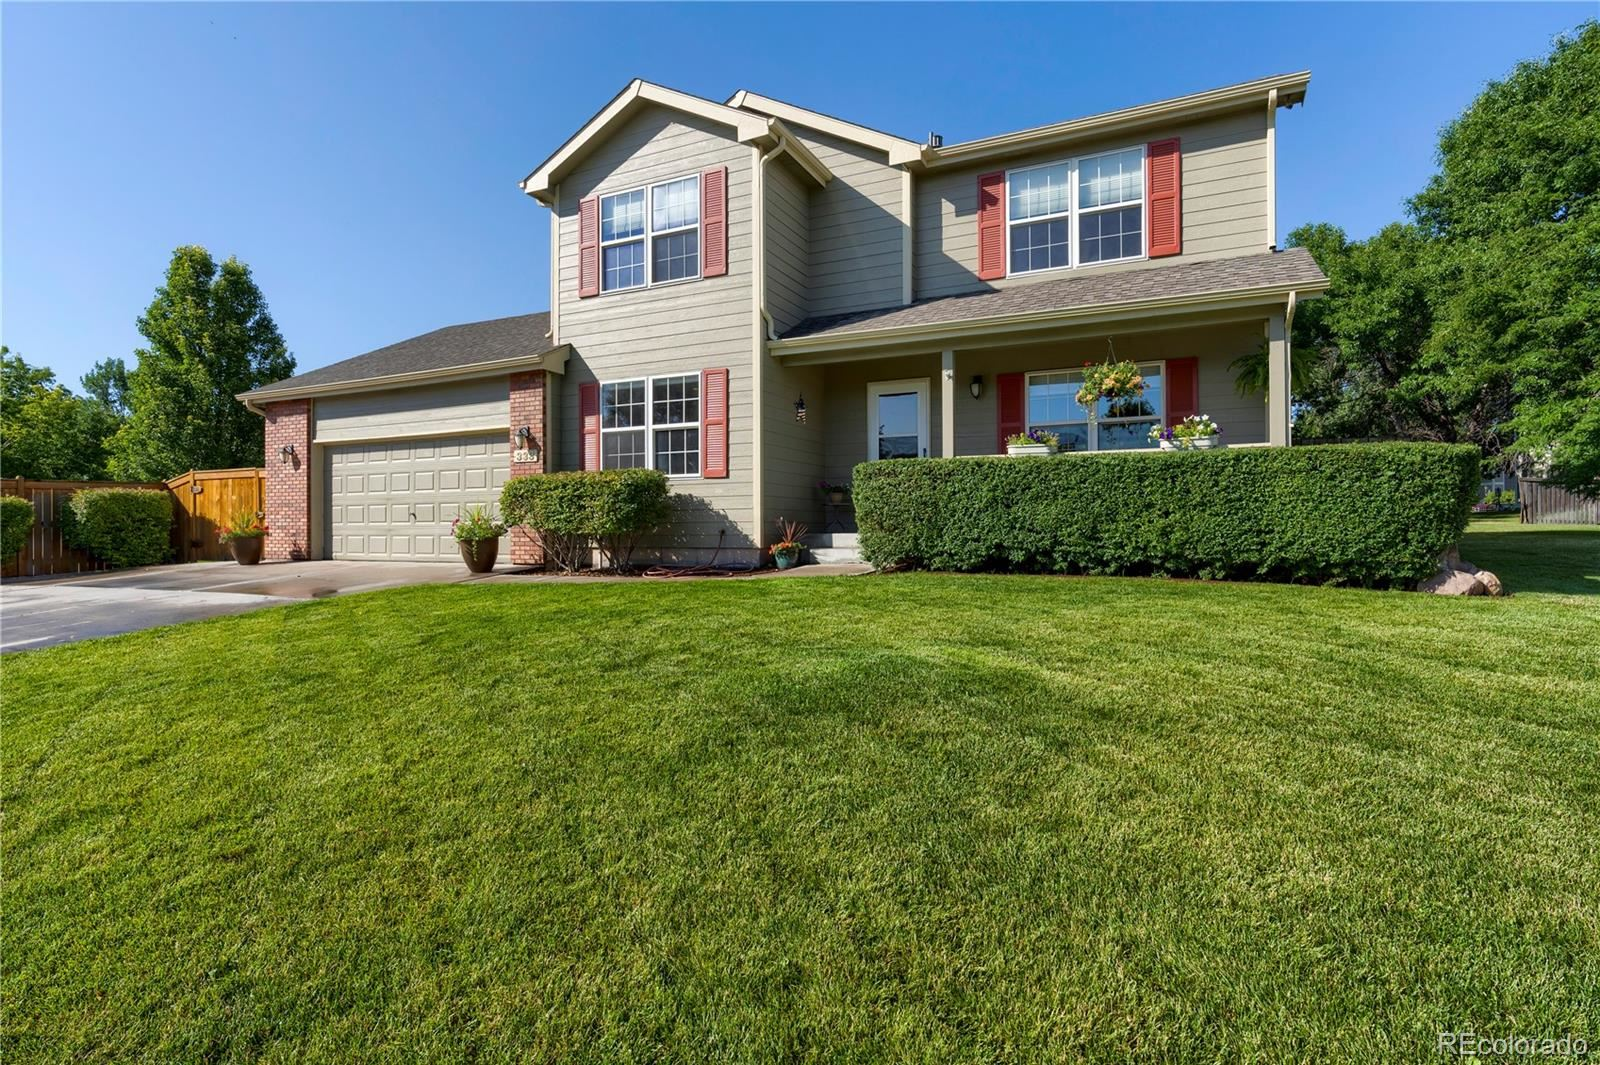 333 Albion Way, Fort Collins, CO 80526 - MLS#: 7392668